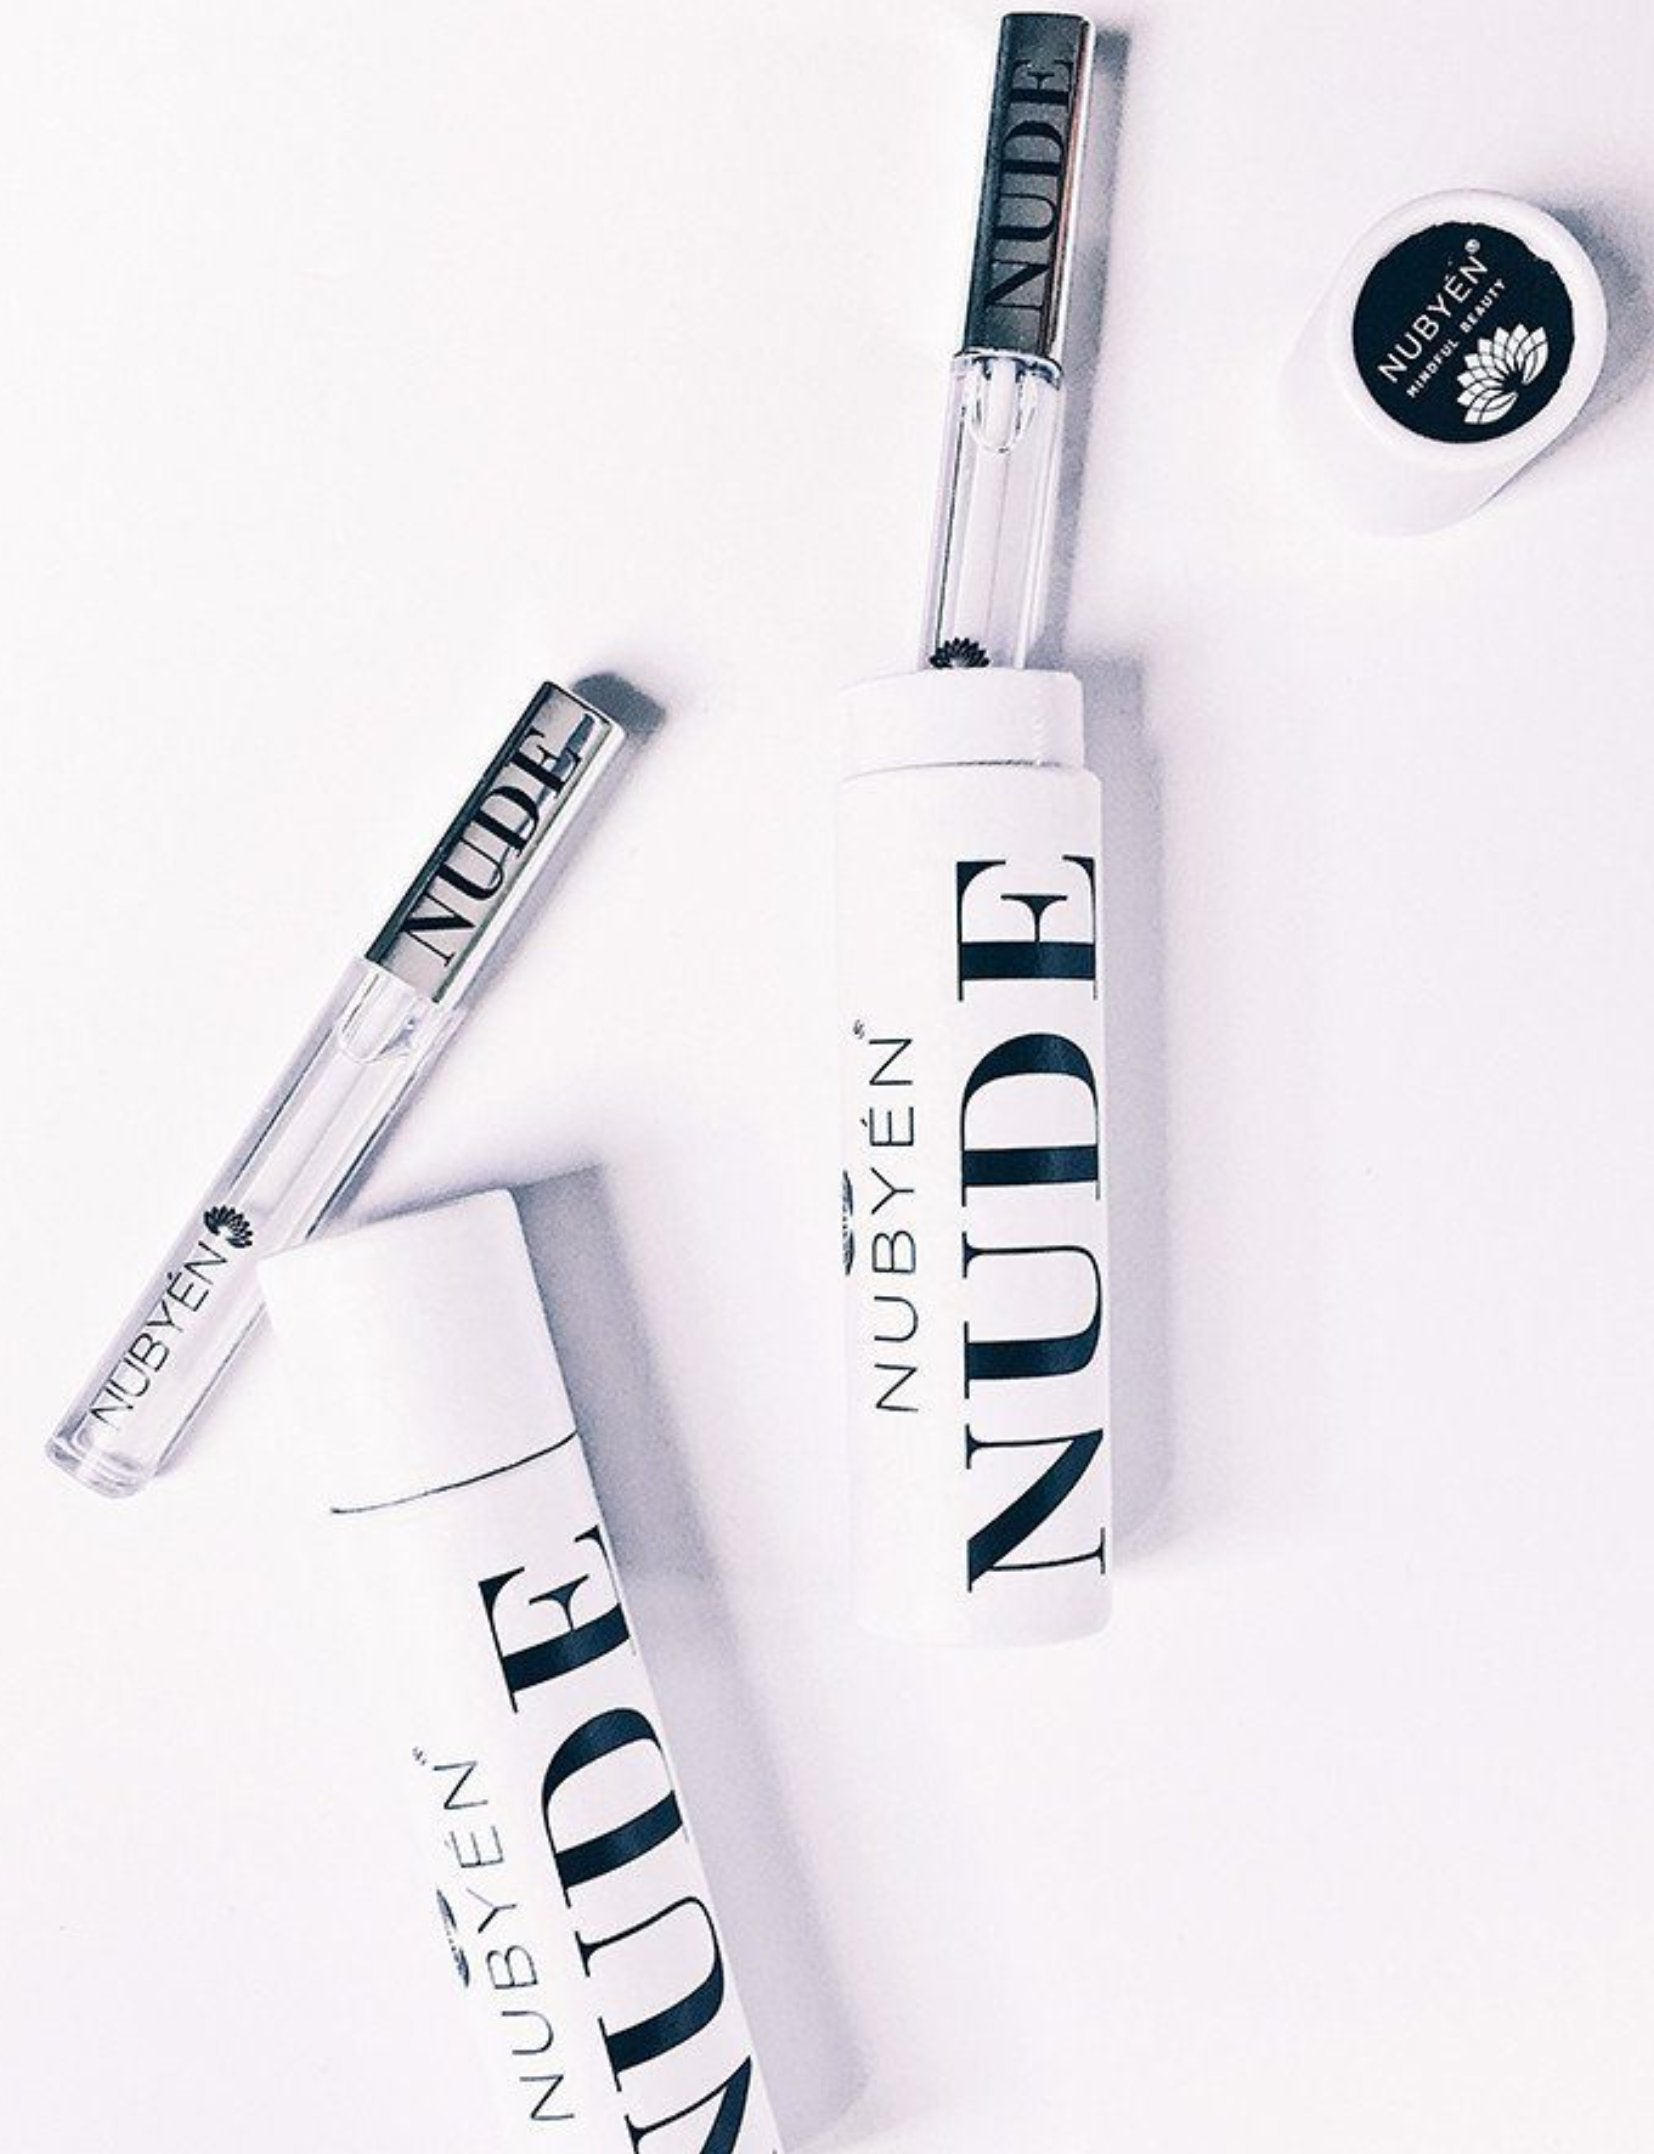 nubyen lip plumper, lipl plumping gloss, best lip plumper,  Nubyen Nude, its our best selling vegan and cruelty free gloss for fuller lips instantly, collagen hyaluronic acid, best lip plumping lipgloss, best lip plumper, lip filler, full lips, lip injections, plump it, to faced lip injection, nubyen nude Charlotte tilbury collagen lip plumper, too faced lip injection, dior addict lip maximiser, code lip intense plumper, buxum lip plumper, plump it lip plumper